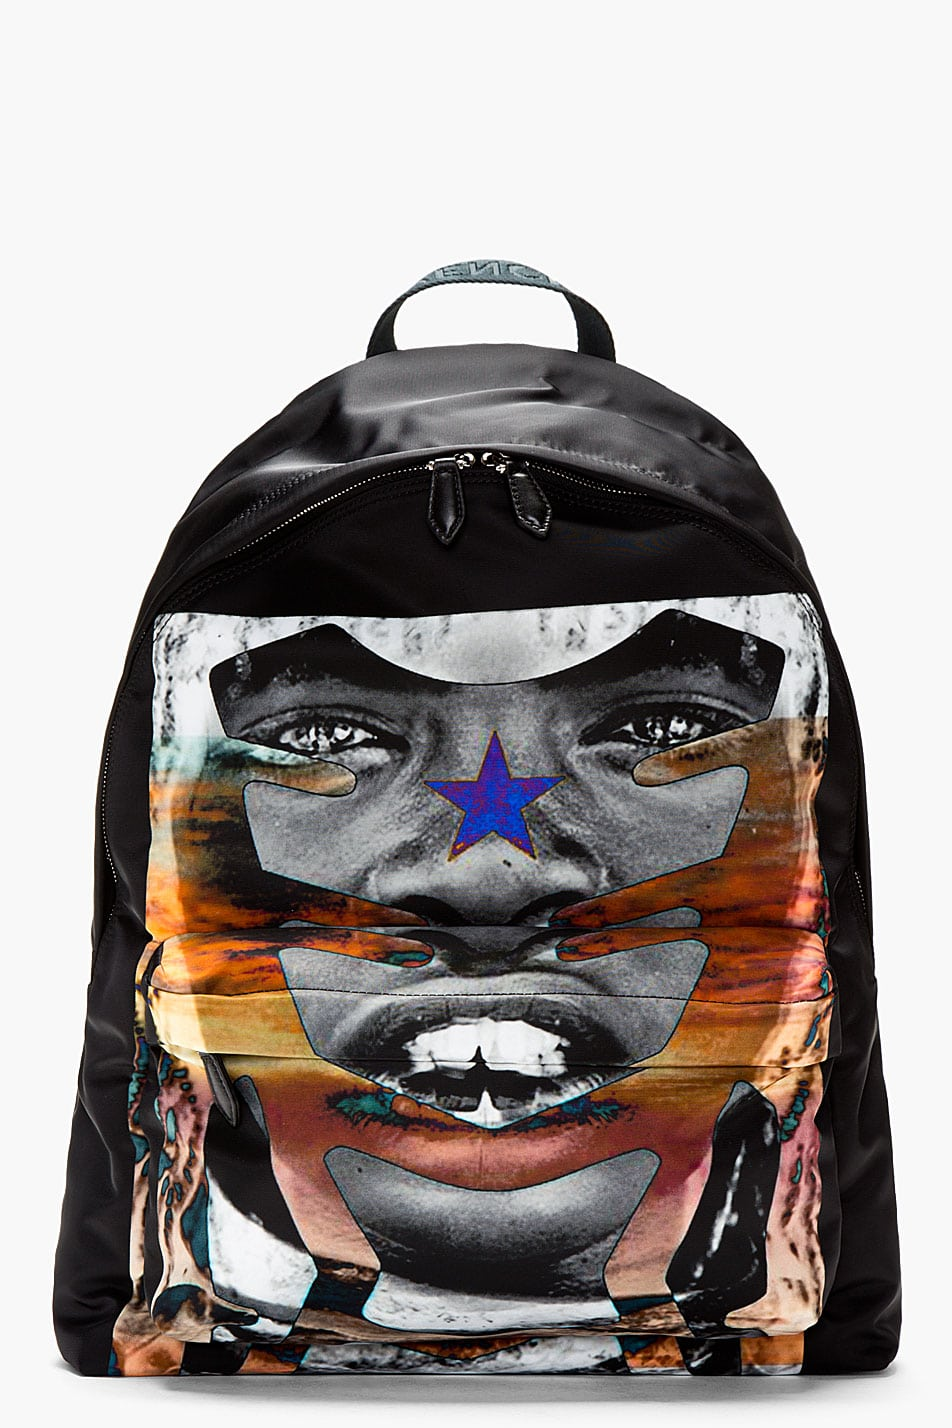 Givenchy Robot Print And Backpacks For Spring 2014